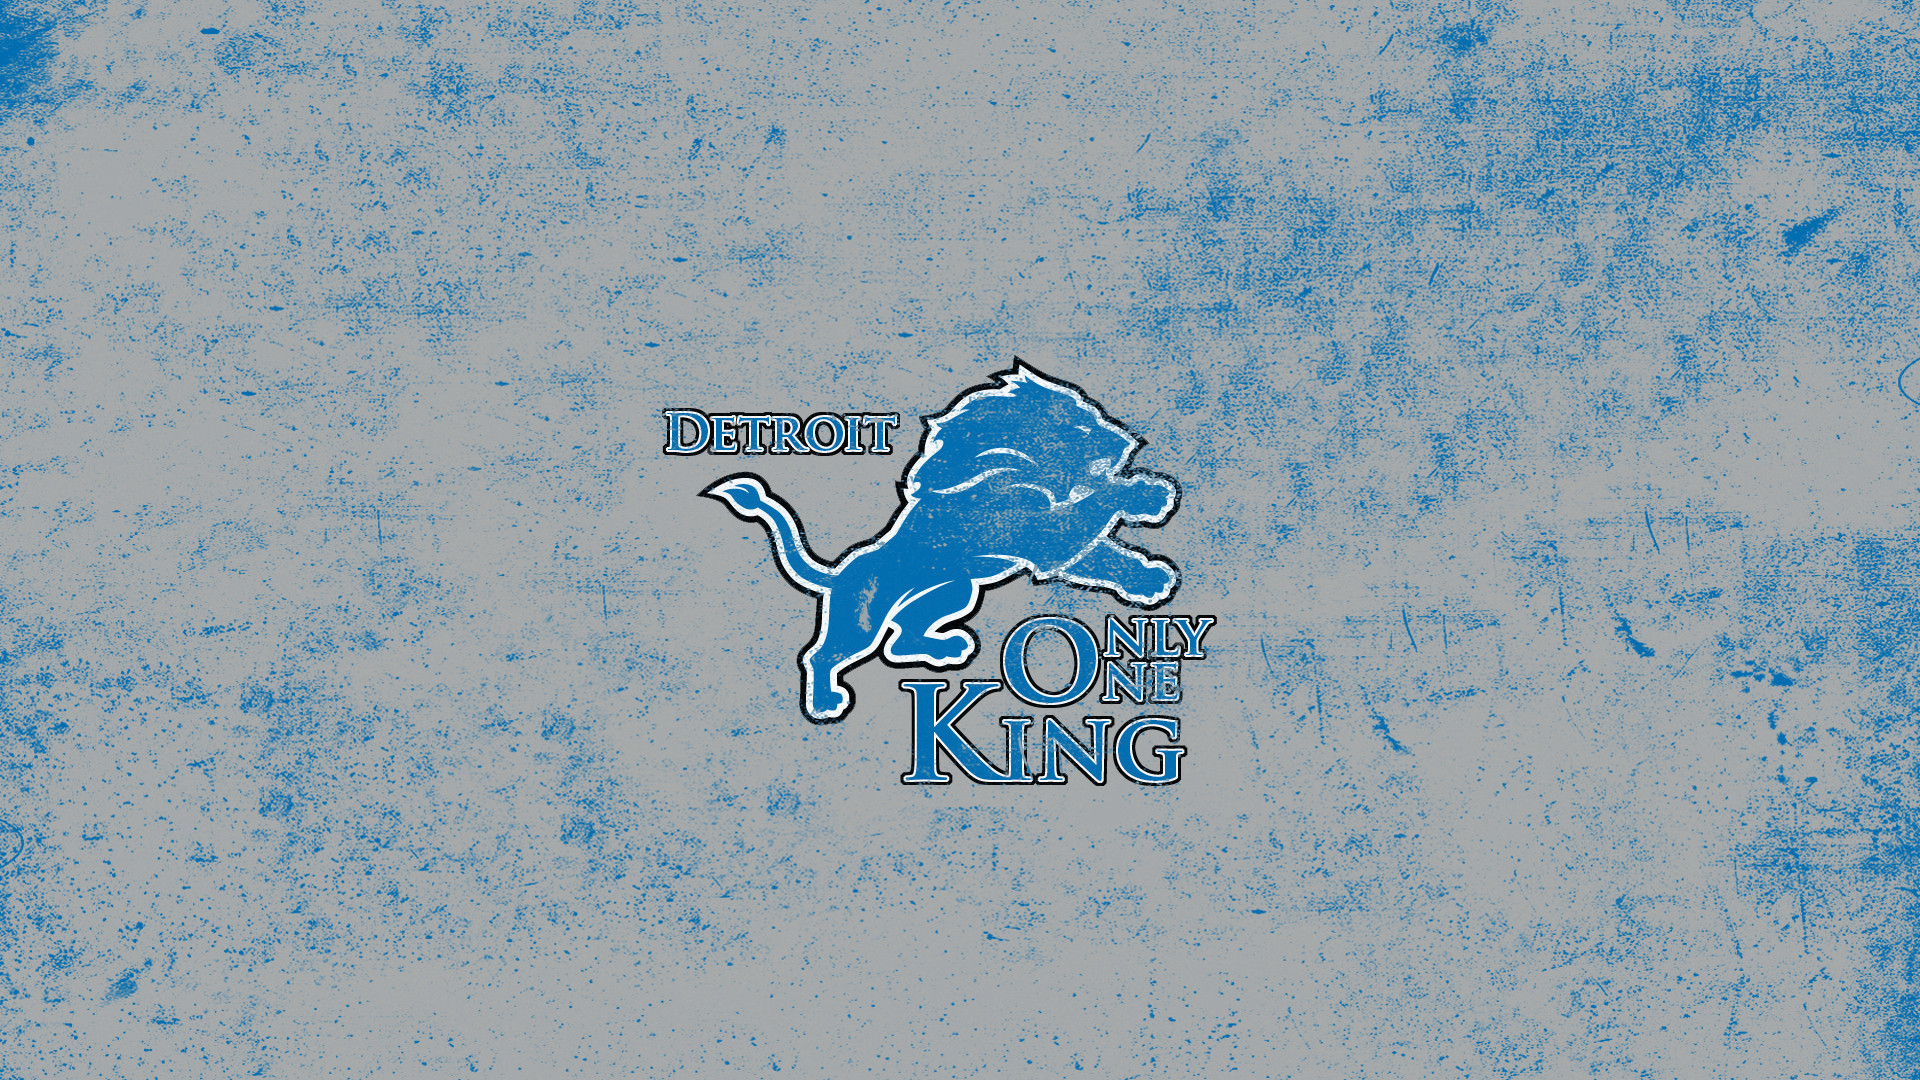 Detroit Lions Wallpapers   HD Wallpapers Early